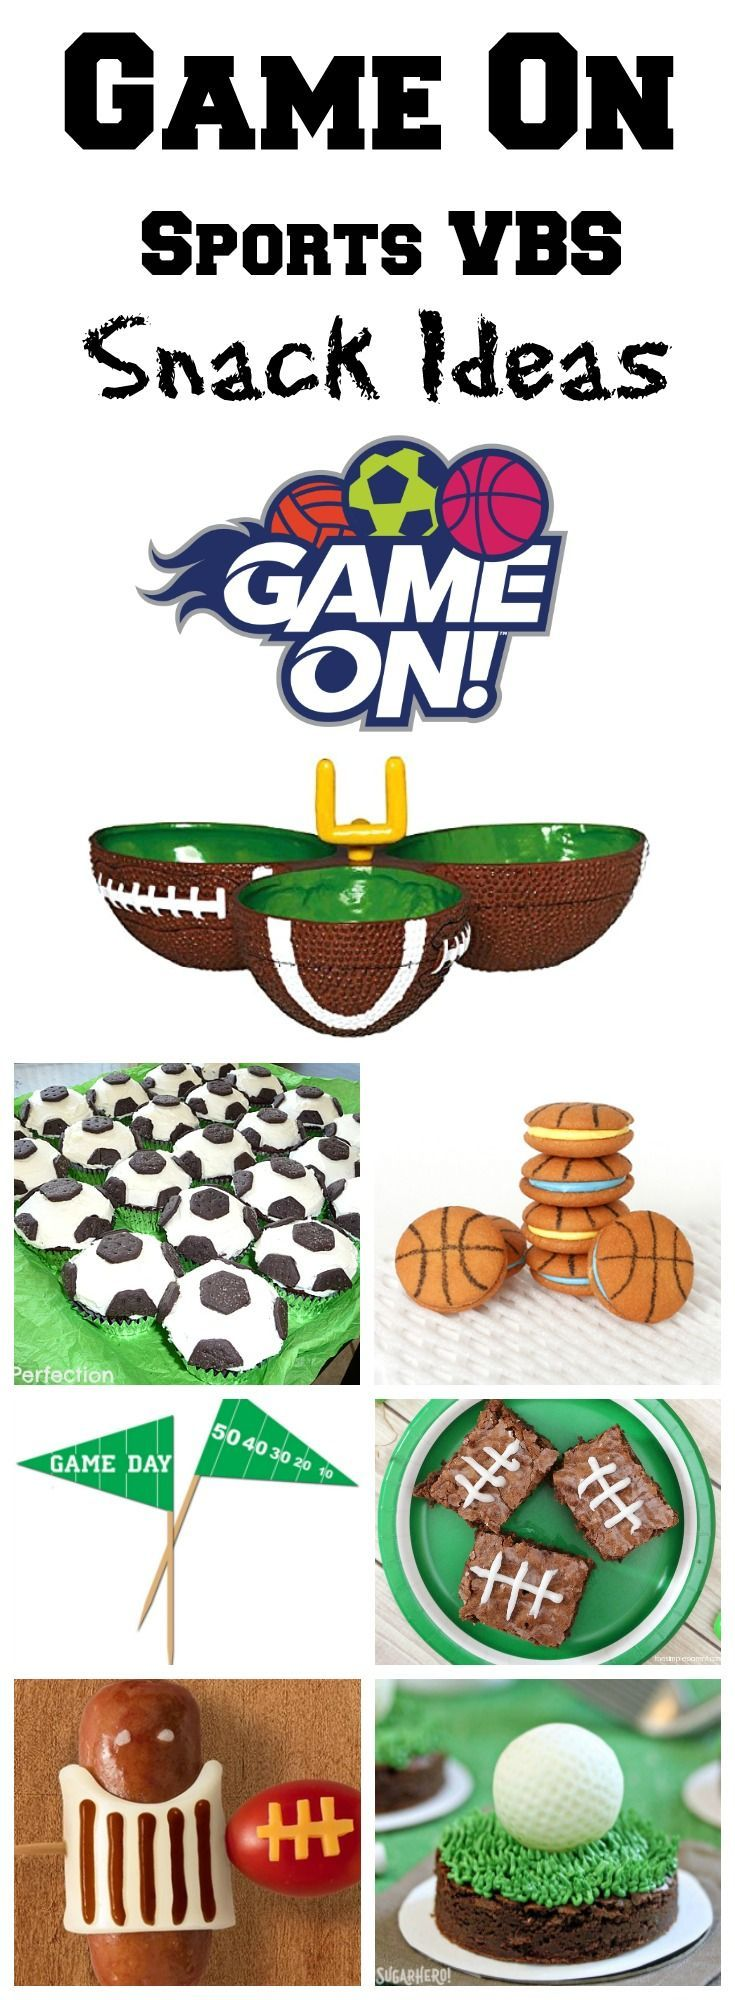 Are you gearing up for Game On VBS this year? You'll score major points with the kids with these awesome sport snack ideas!